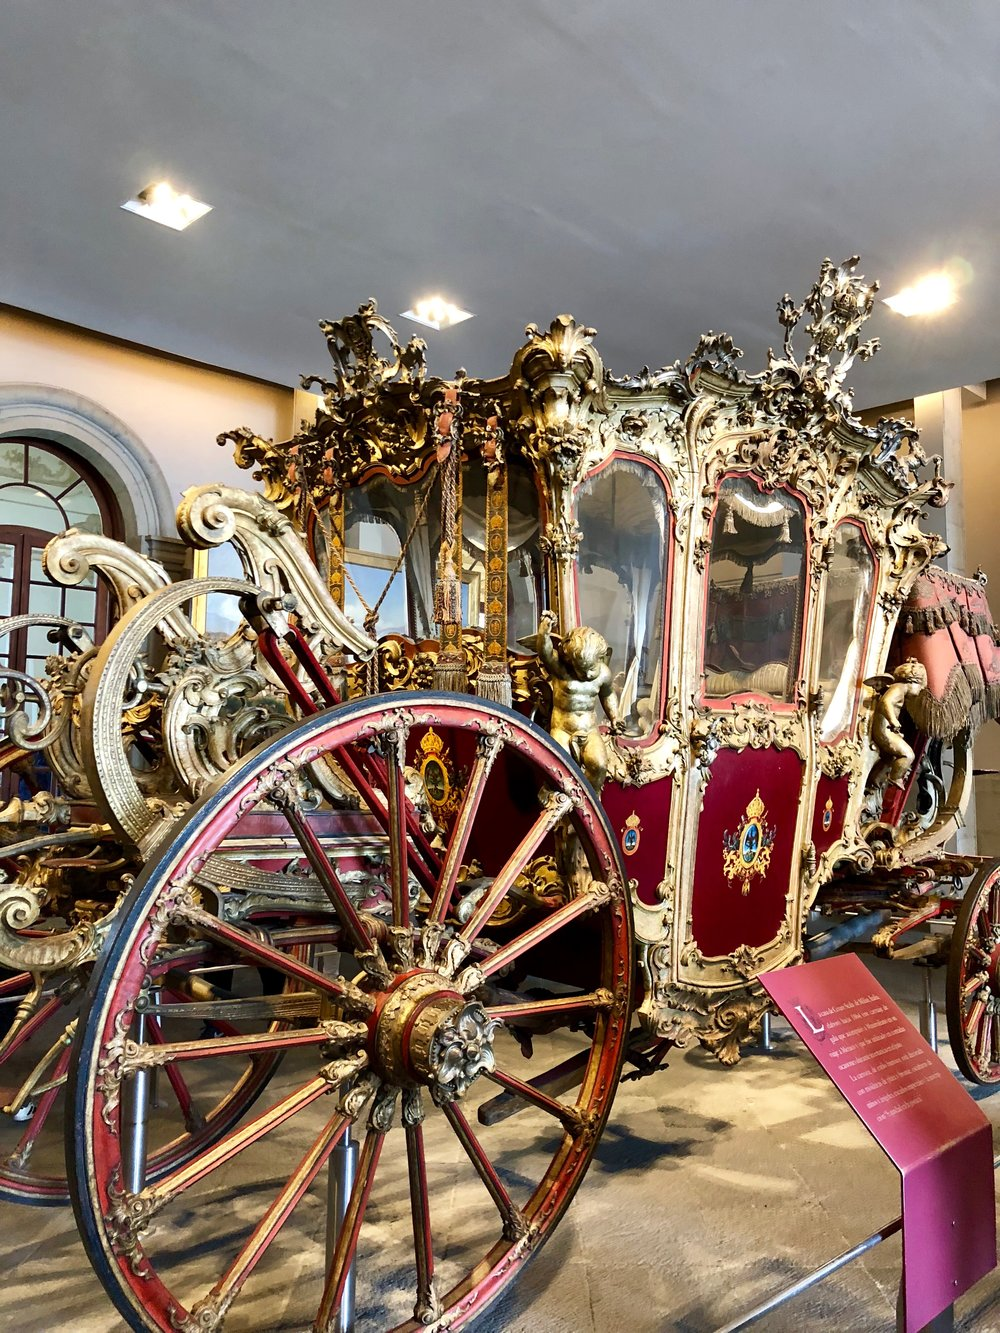 A carriage exhibit inside the Chapultepec museum